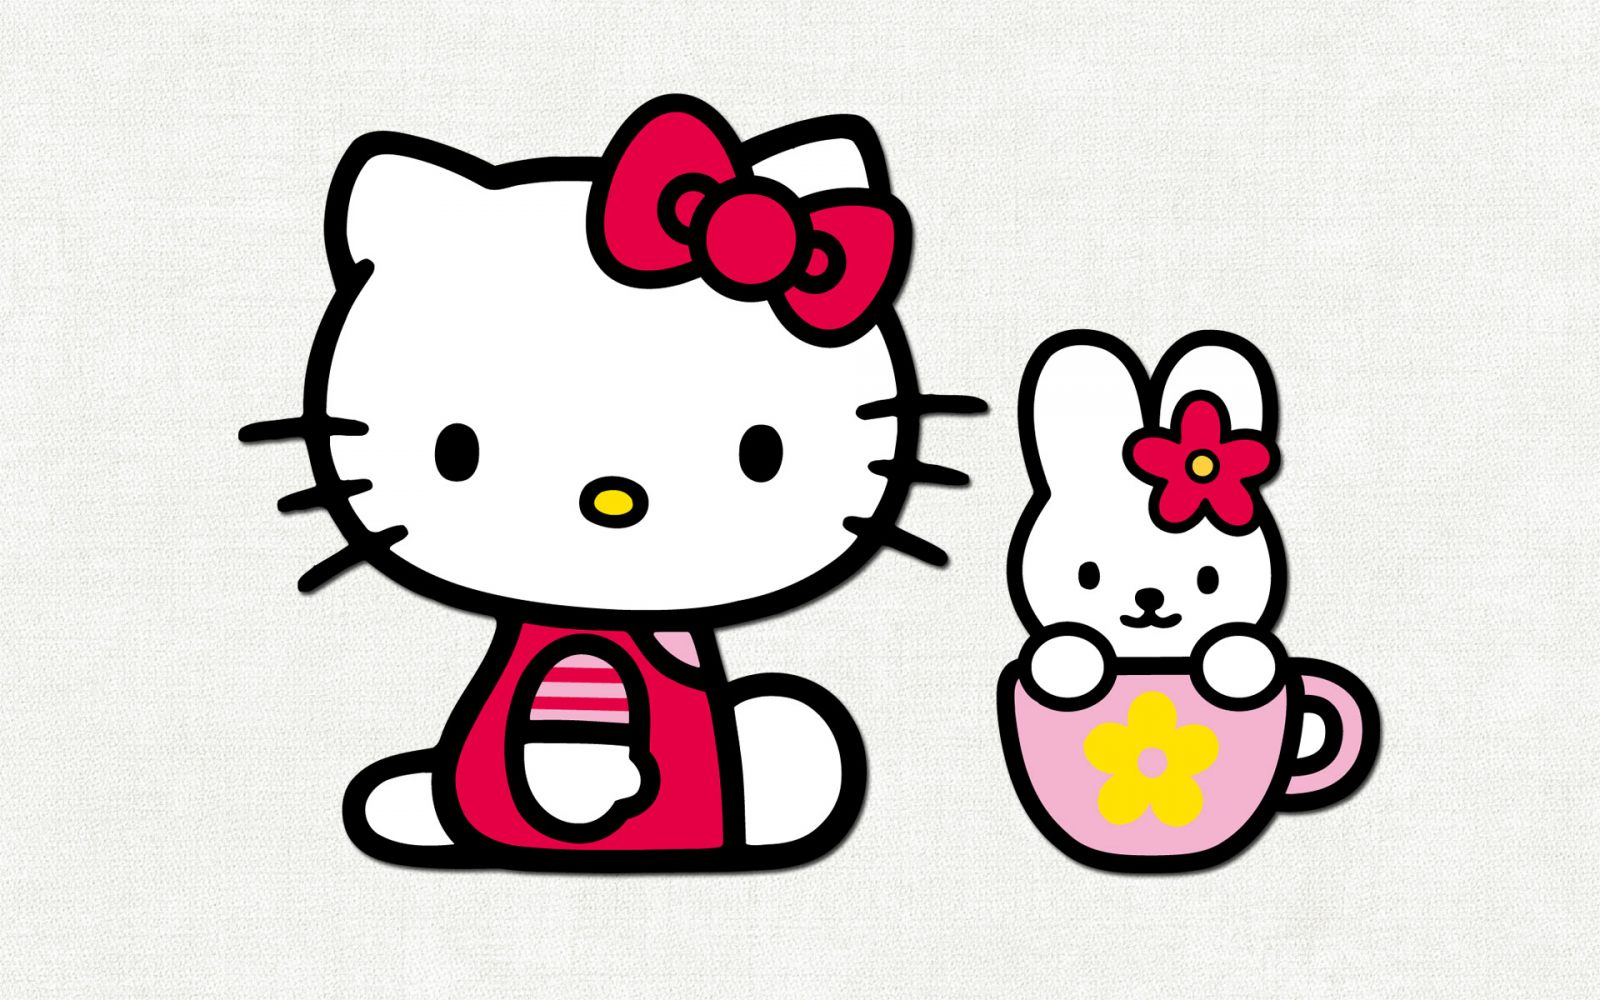 Hello Kitty e coelho